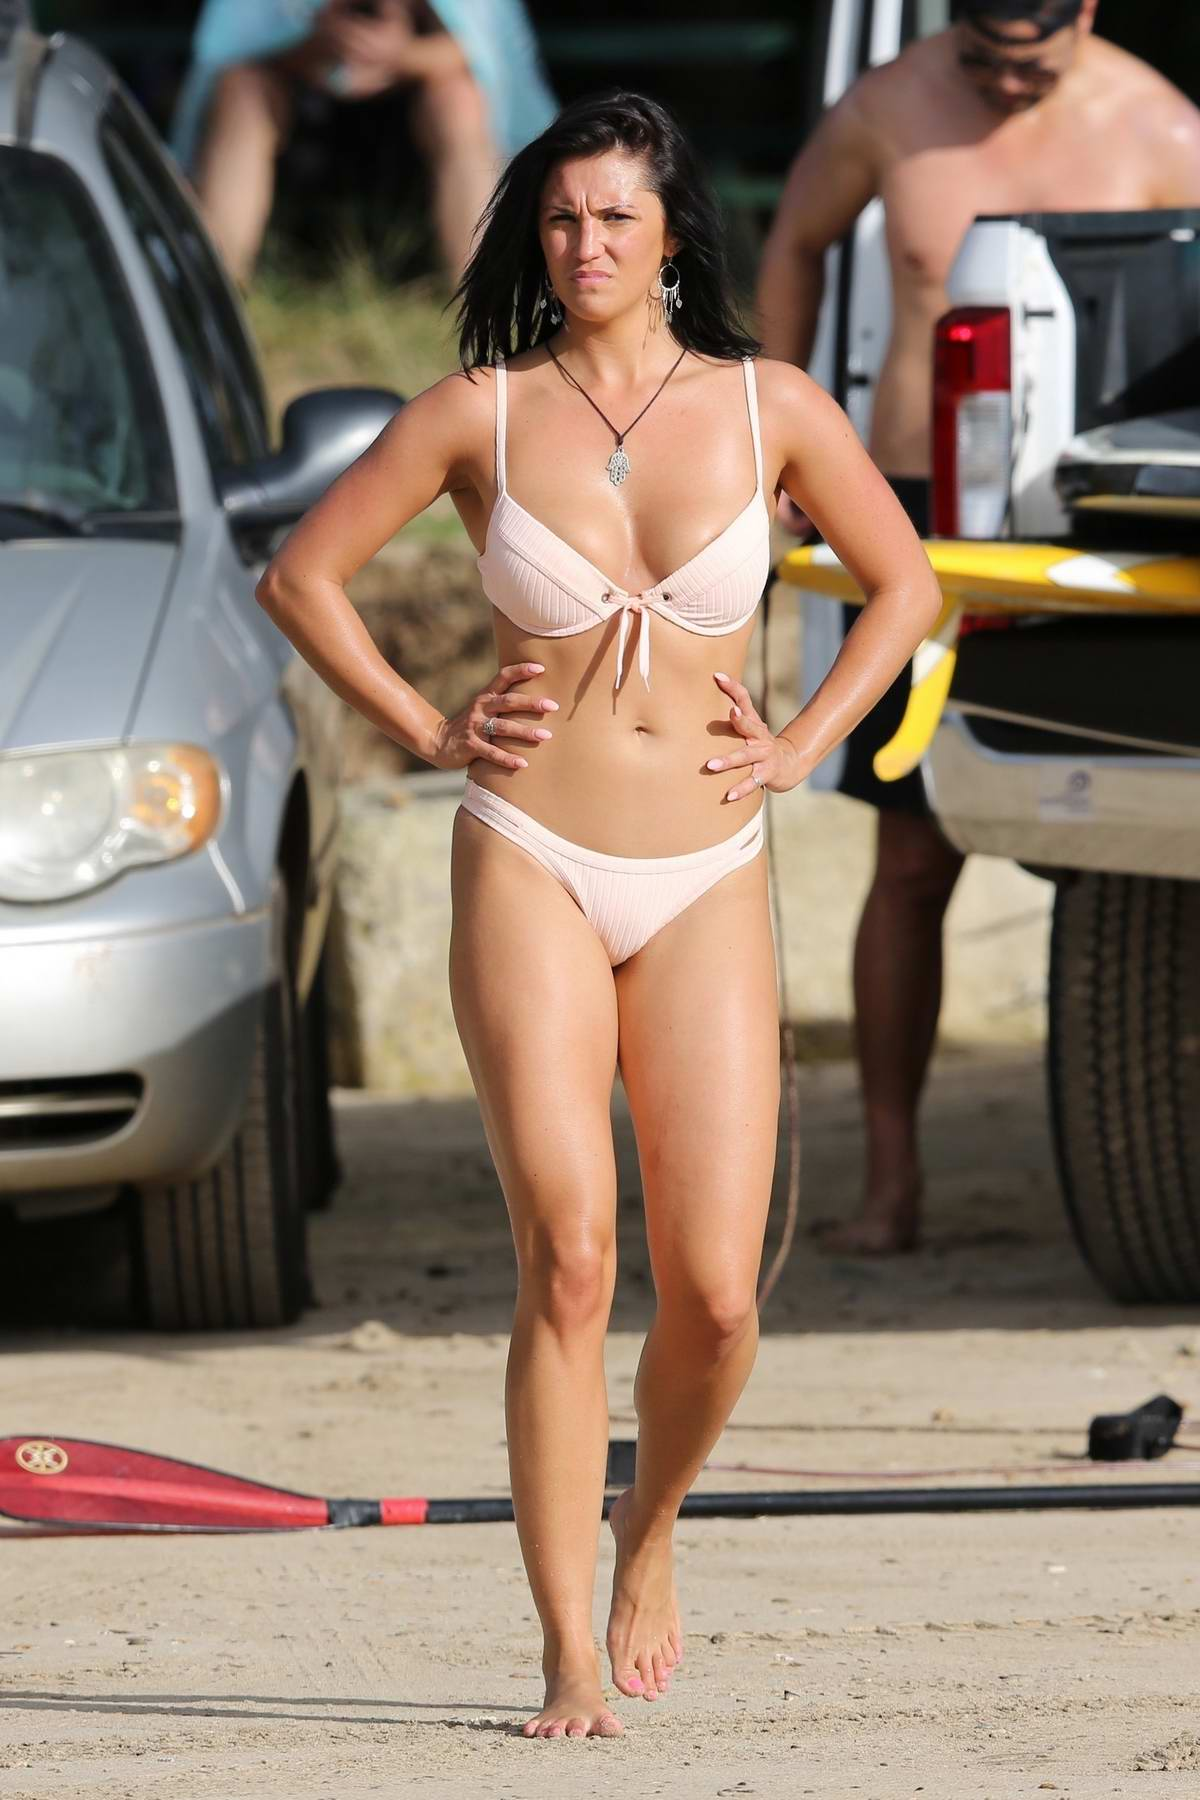 Darcie Lincoln and Jeremy Piven seen paddle boarding in a bikini while on vacation in Hawaii